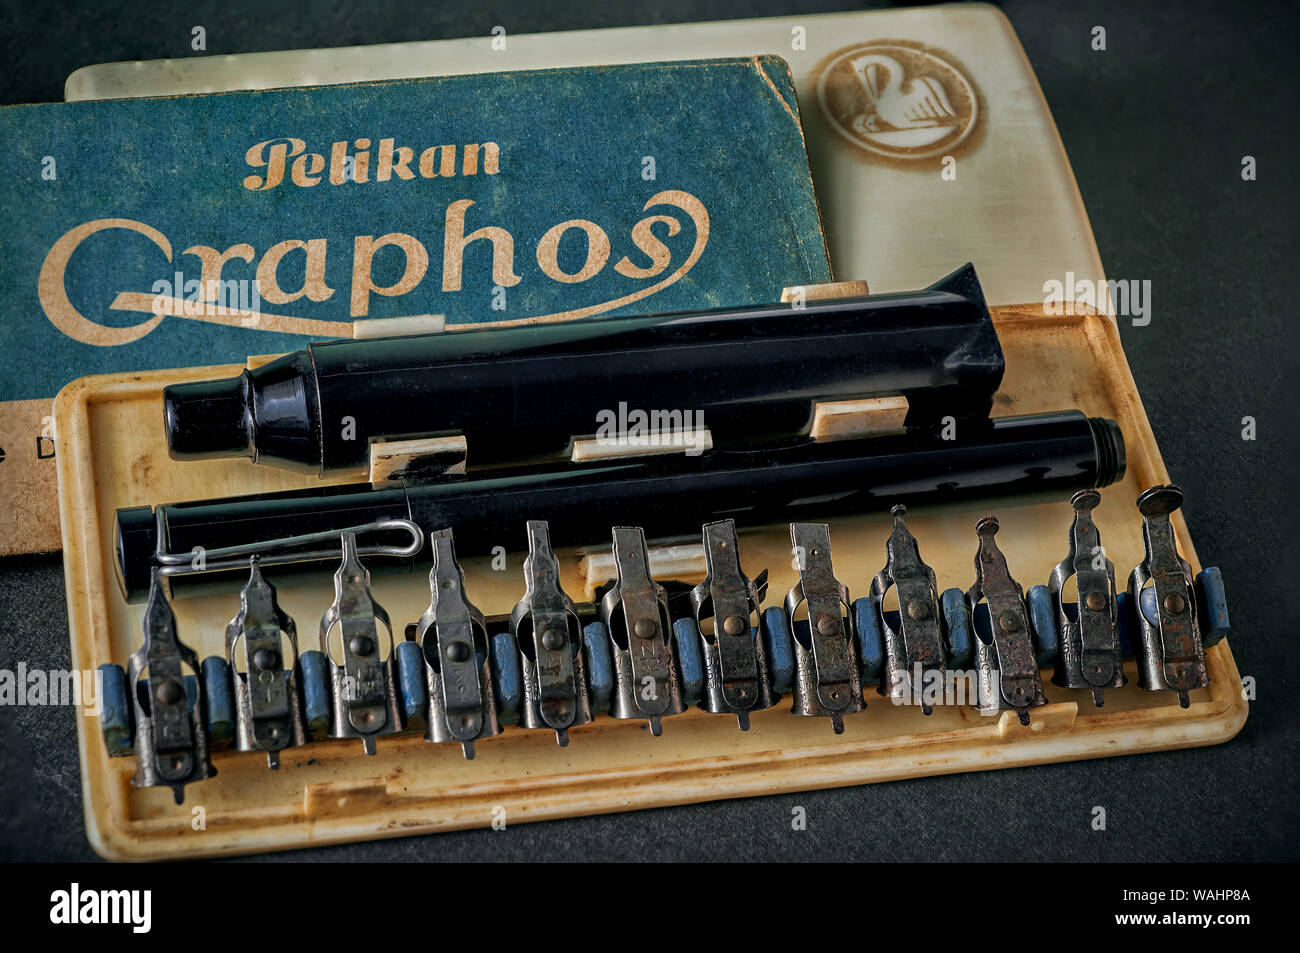 09 Aug 2016 Vintage Rare Pelikan Graphos Calligraphy Tools Pen Set 12 Nibs studio shot Kalyan Maharashtra India Stock Photo